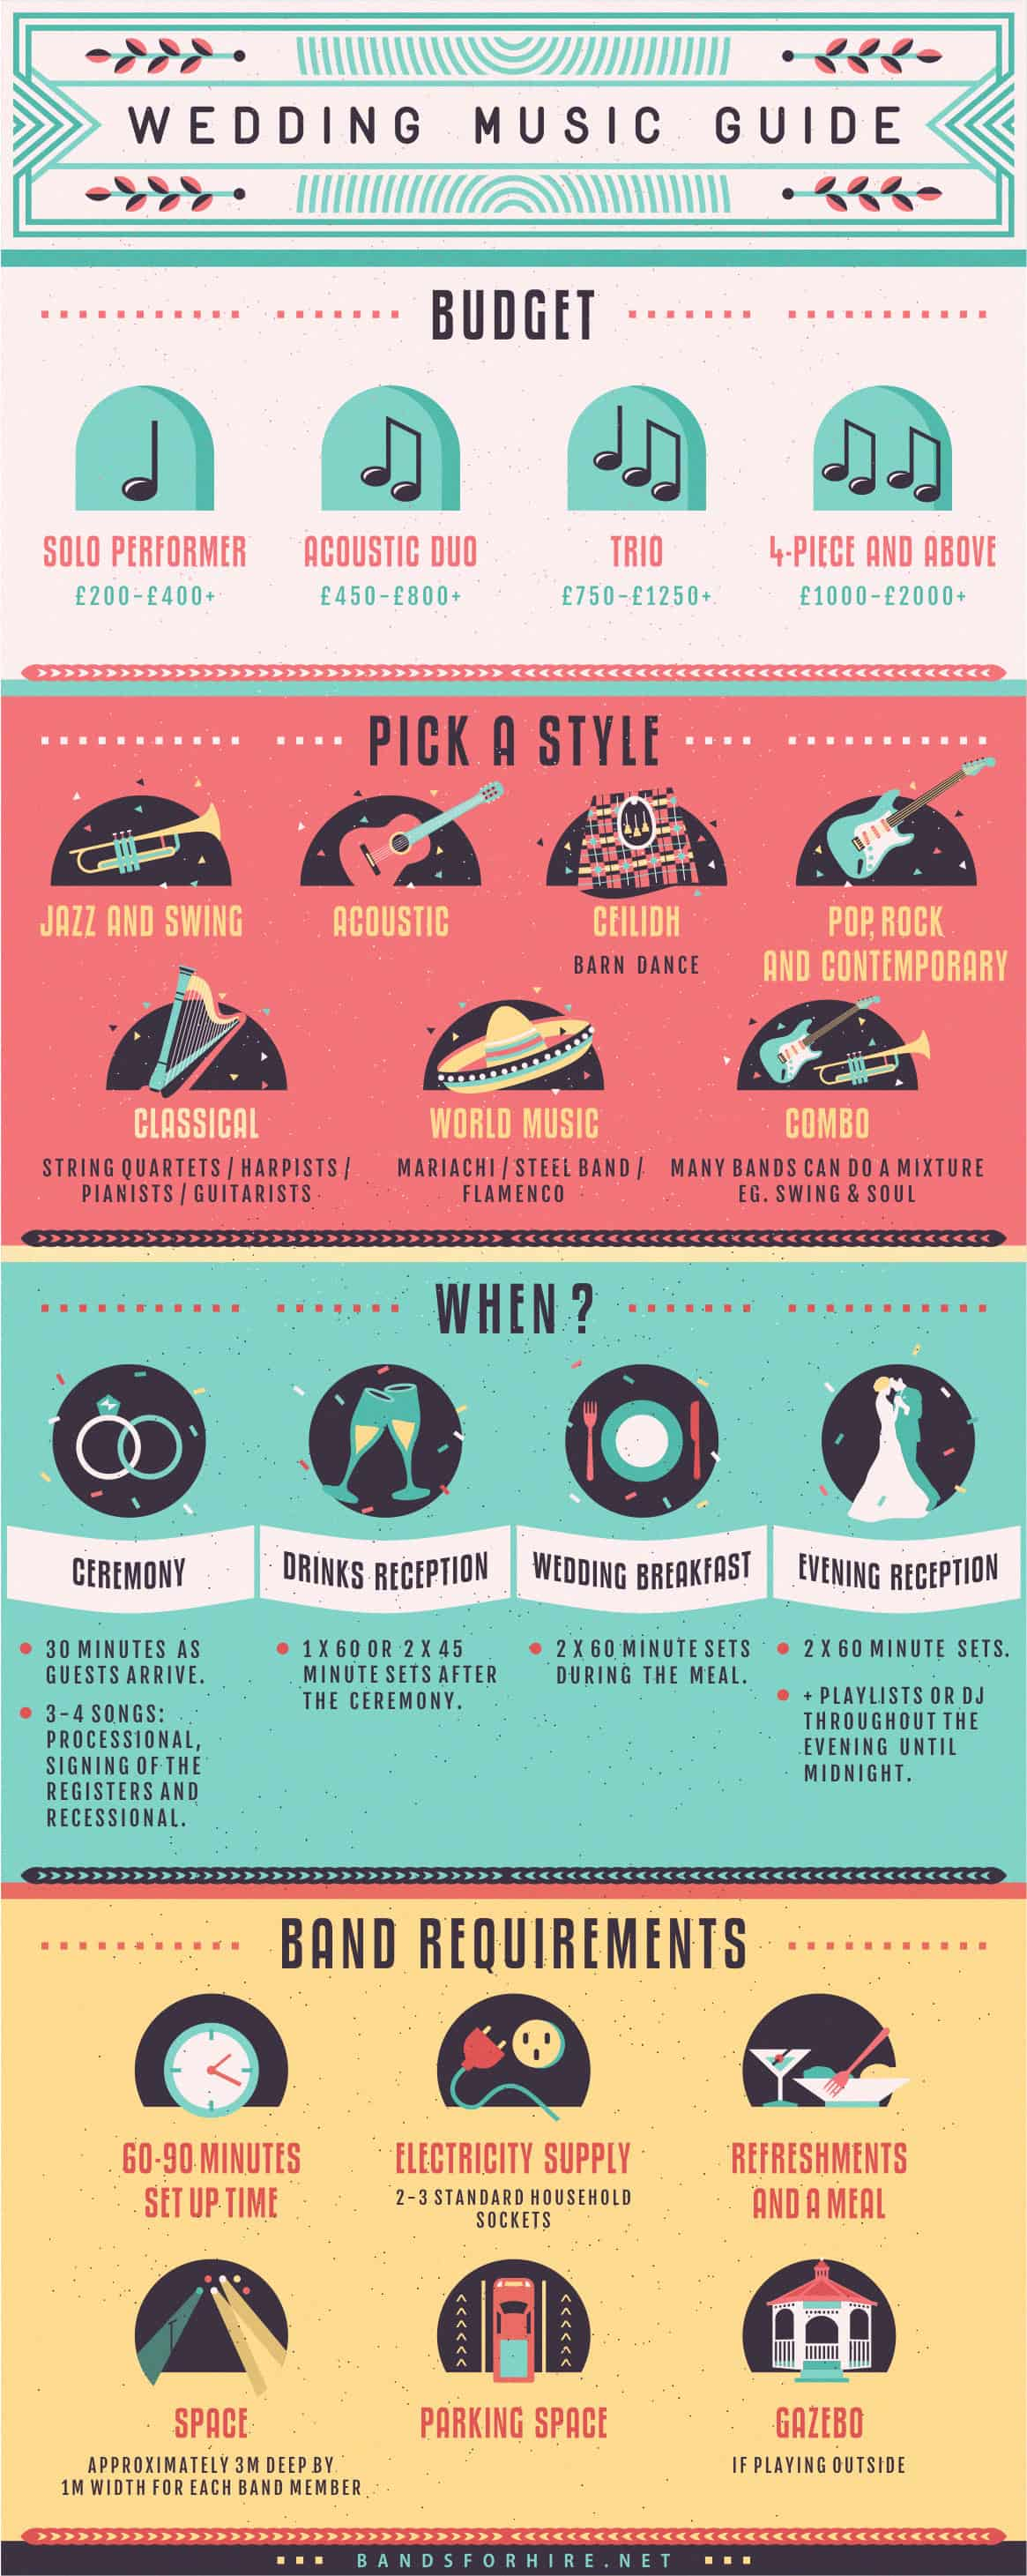 WEDDING MUSIC GUIDE: AN INFOGRAPHIC